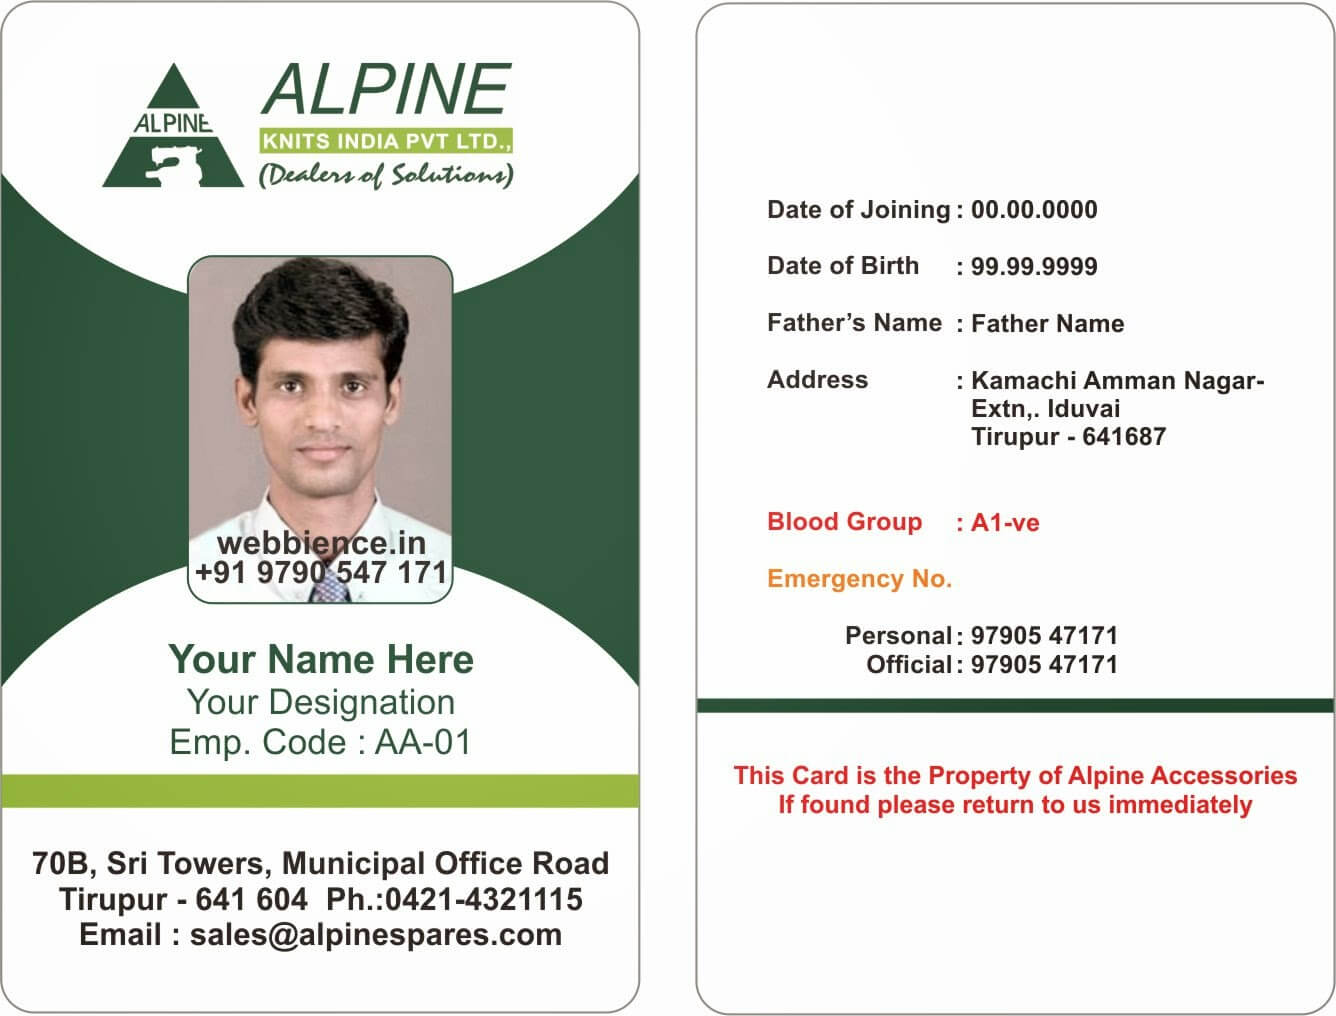 001 Employee Id Card Templates Template Ideas Alpine With Regard To Employee Card Template Word